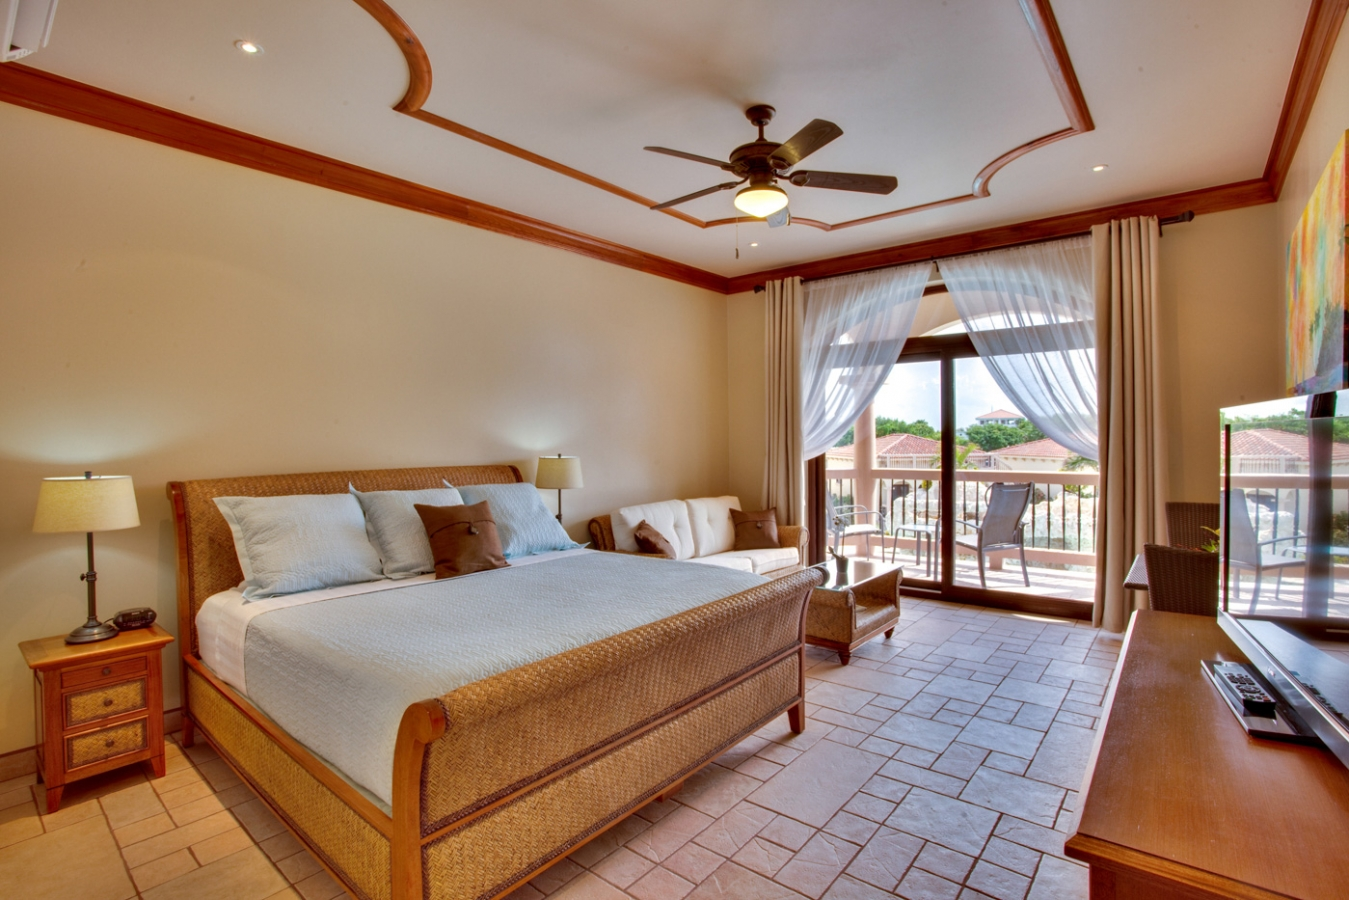 Fancy hotel rooms on the beach images for Exclusive hotels